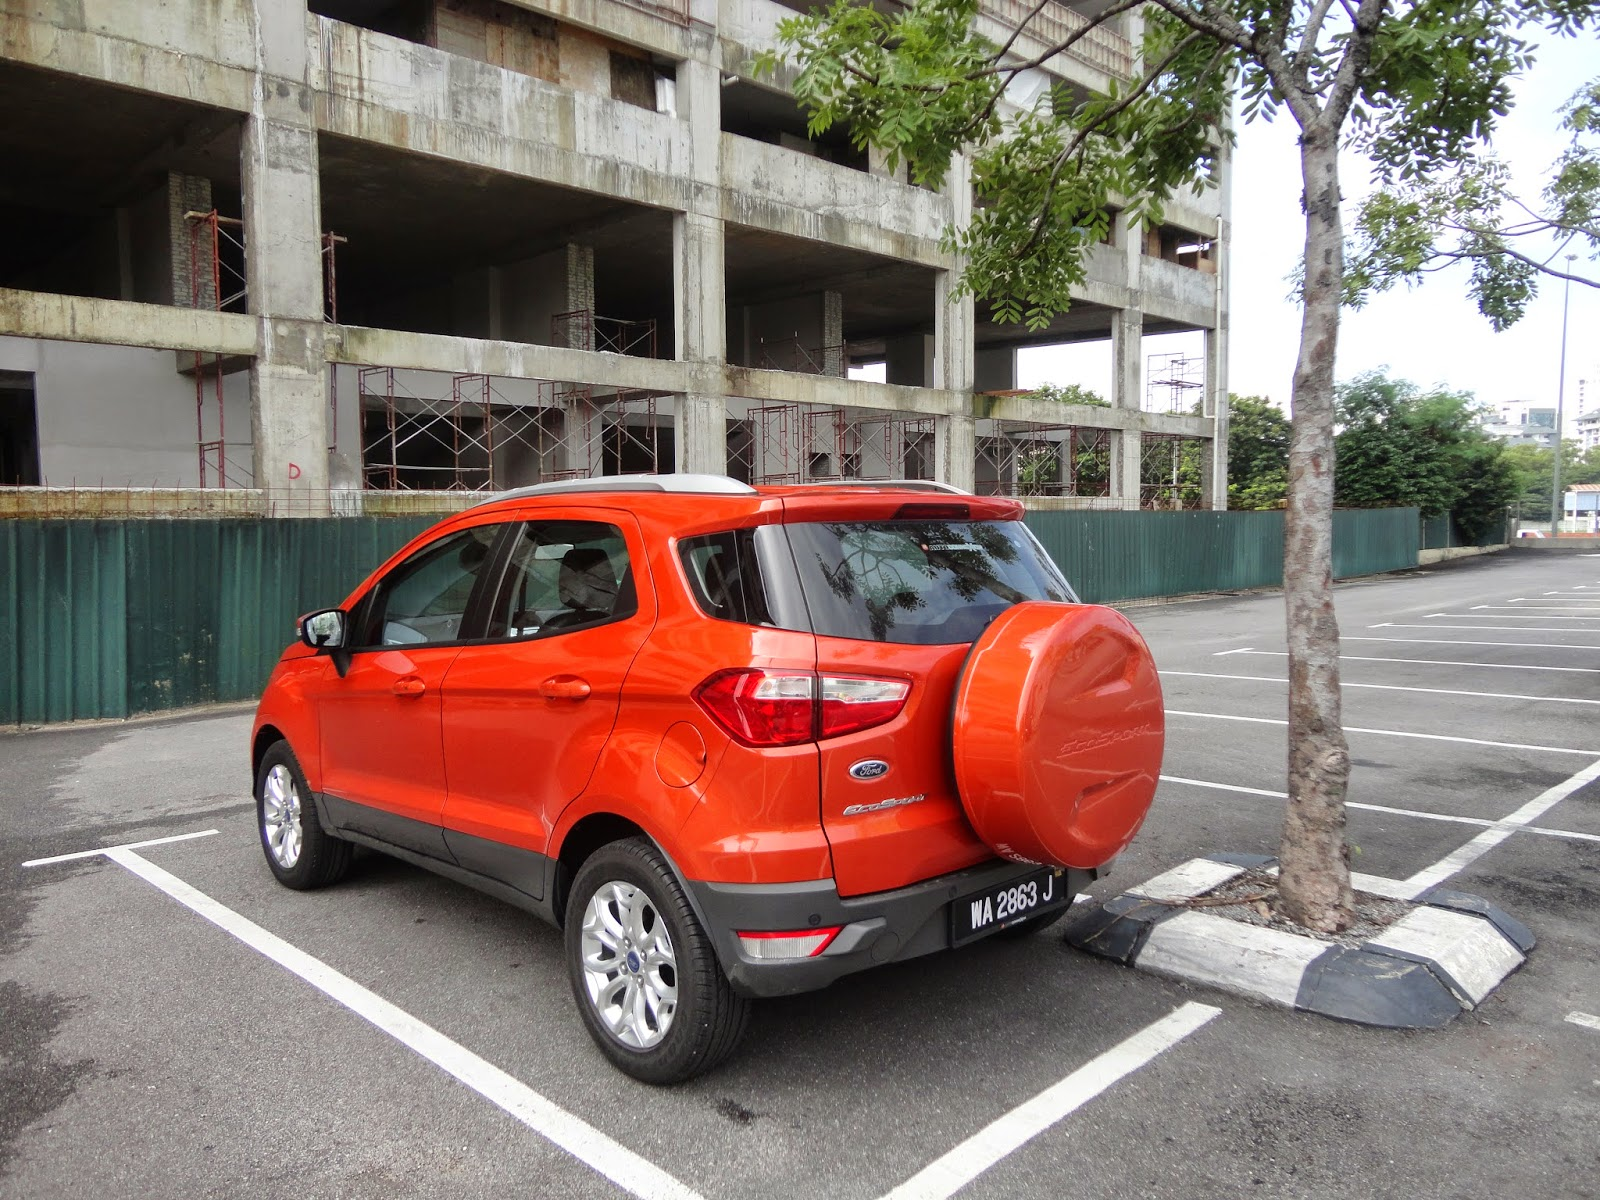 The ecosport titanium as tested comes with a pretty long list of gadgets to keep the occupants occupied externally it gets 16inch alloy wheels on 205 60